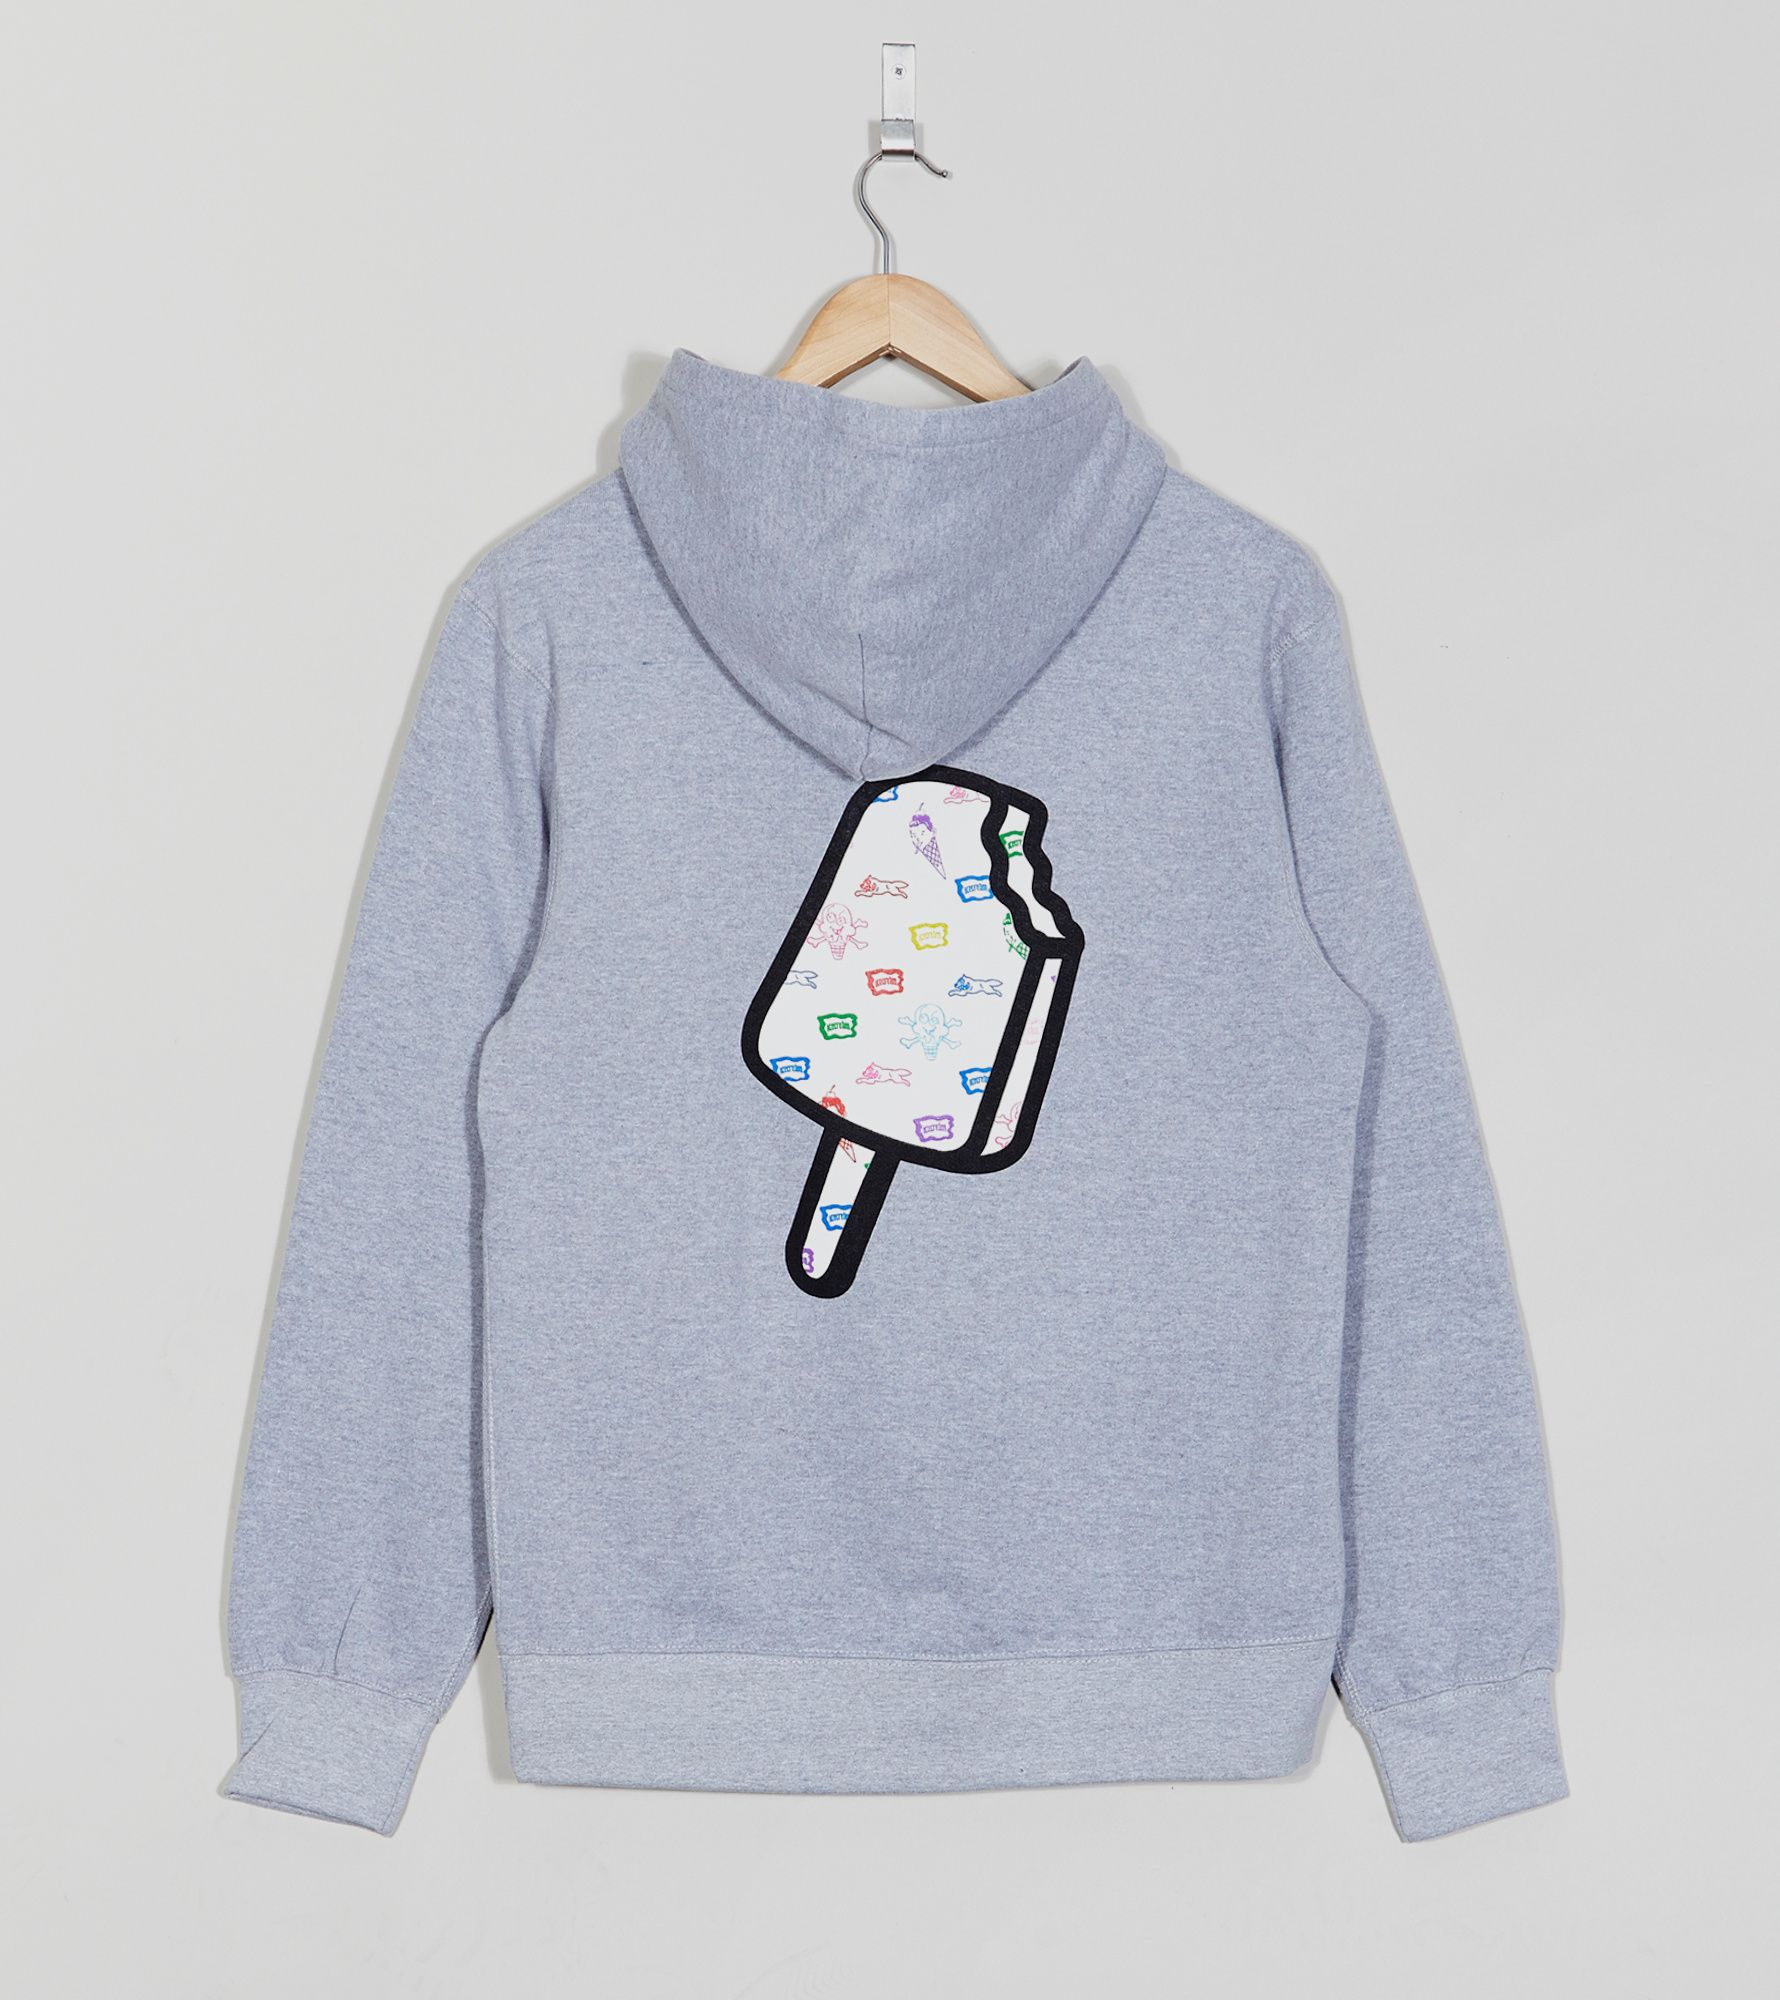 ICECREAM Monogram Overhead Hoody